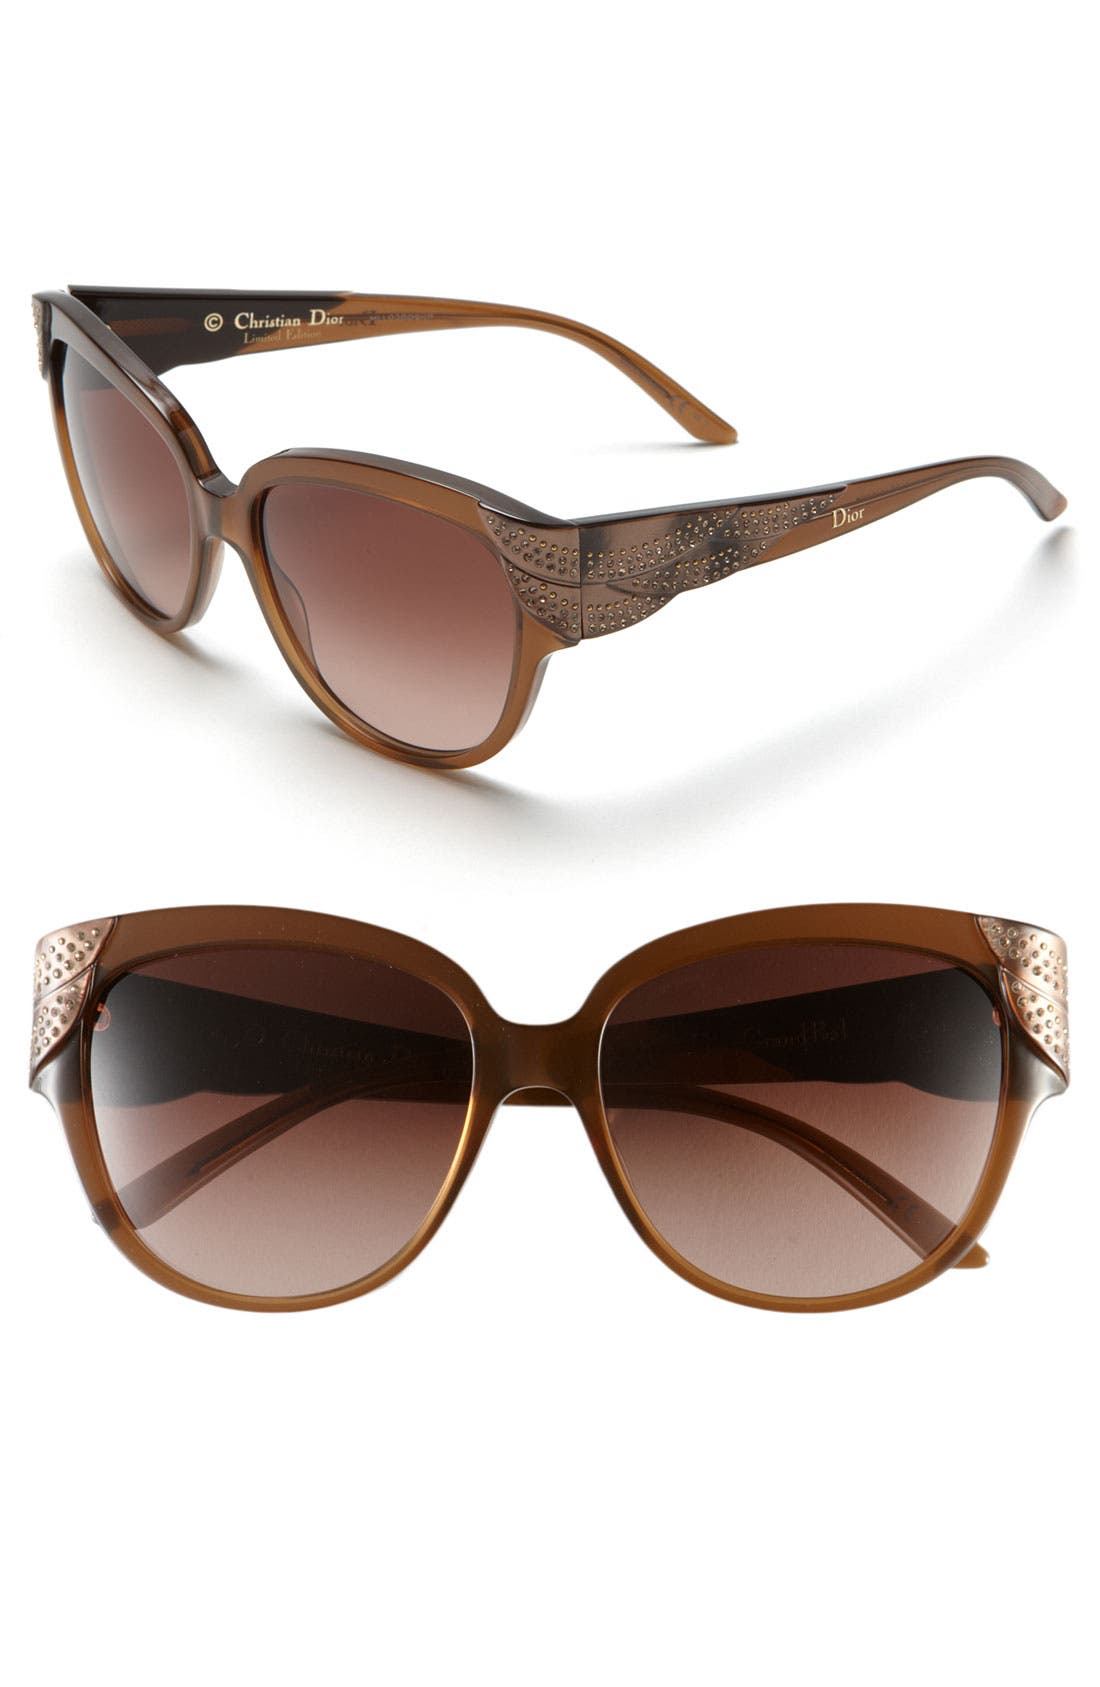 Main Image - Dior 56mm Retro Sunglasses (Limited Edition)